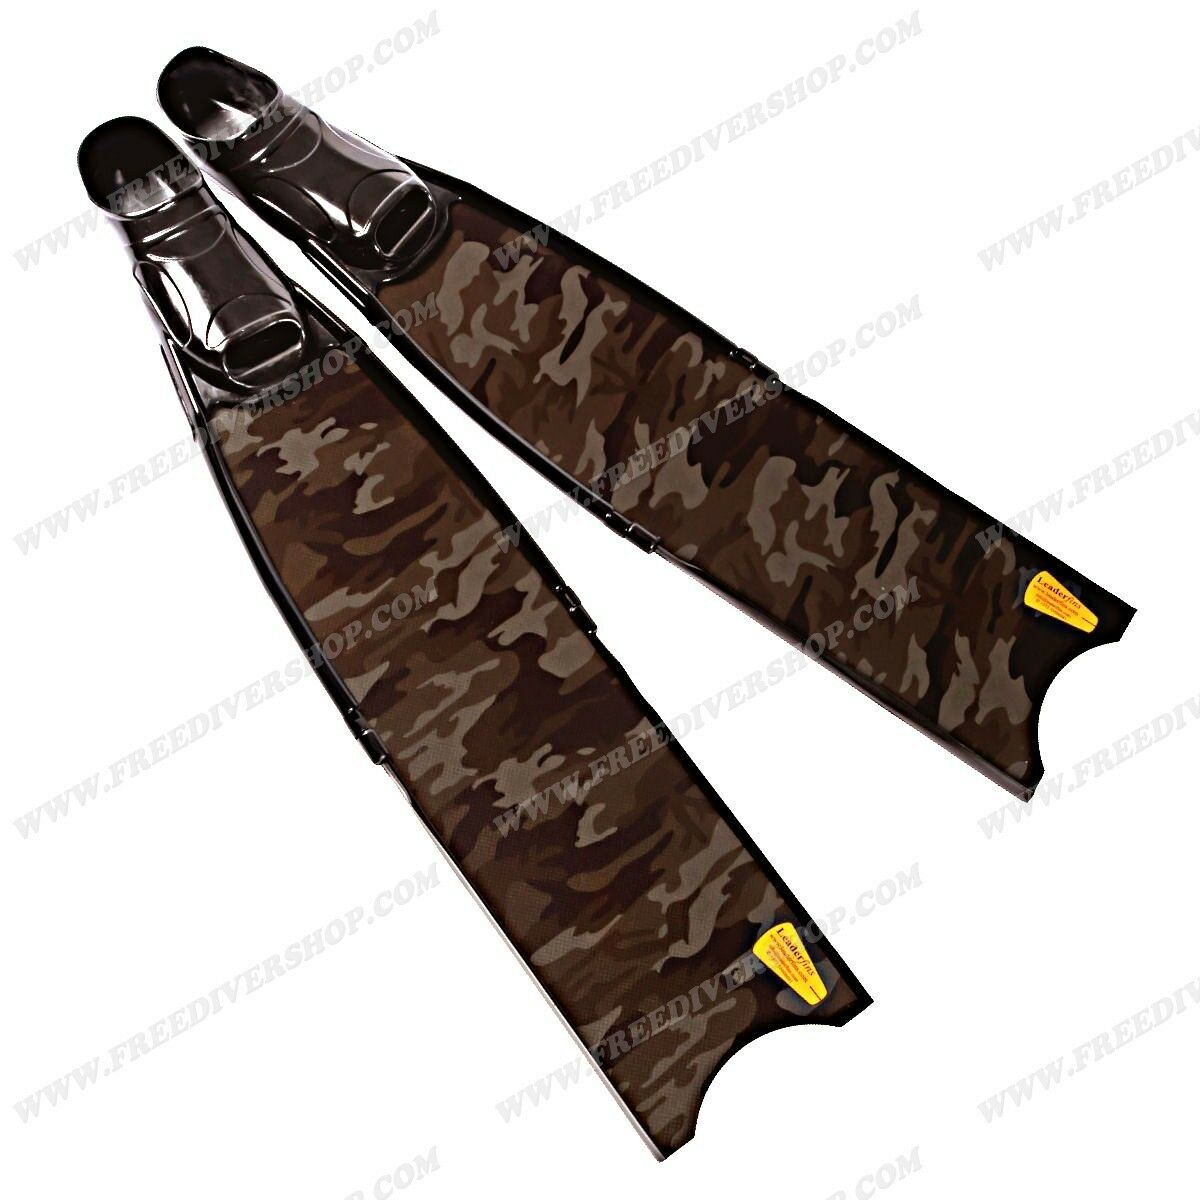 Leaderfins Carbon Camo Freediving Spearfishing  Fins - ALL SIZES  online cheap